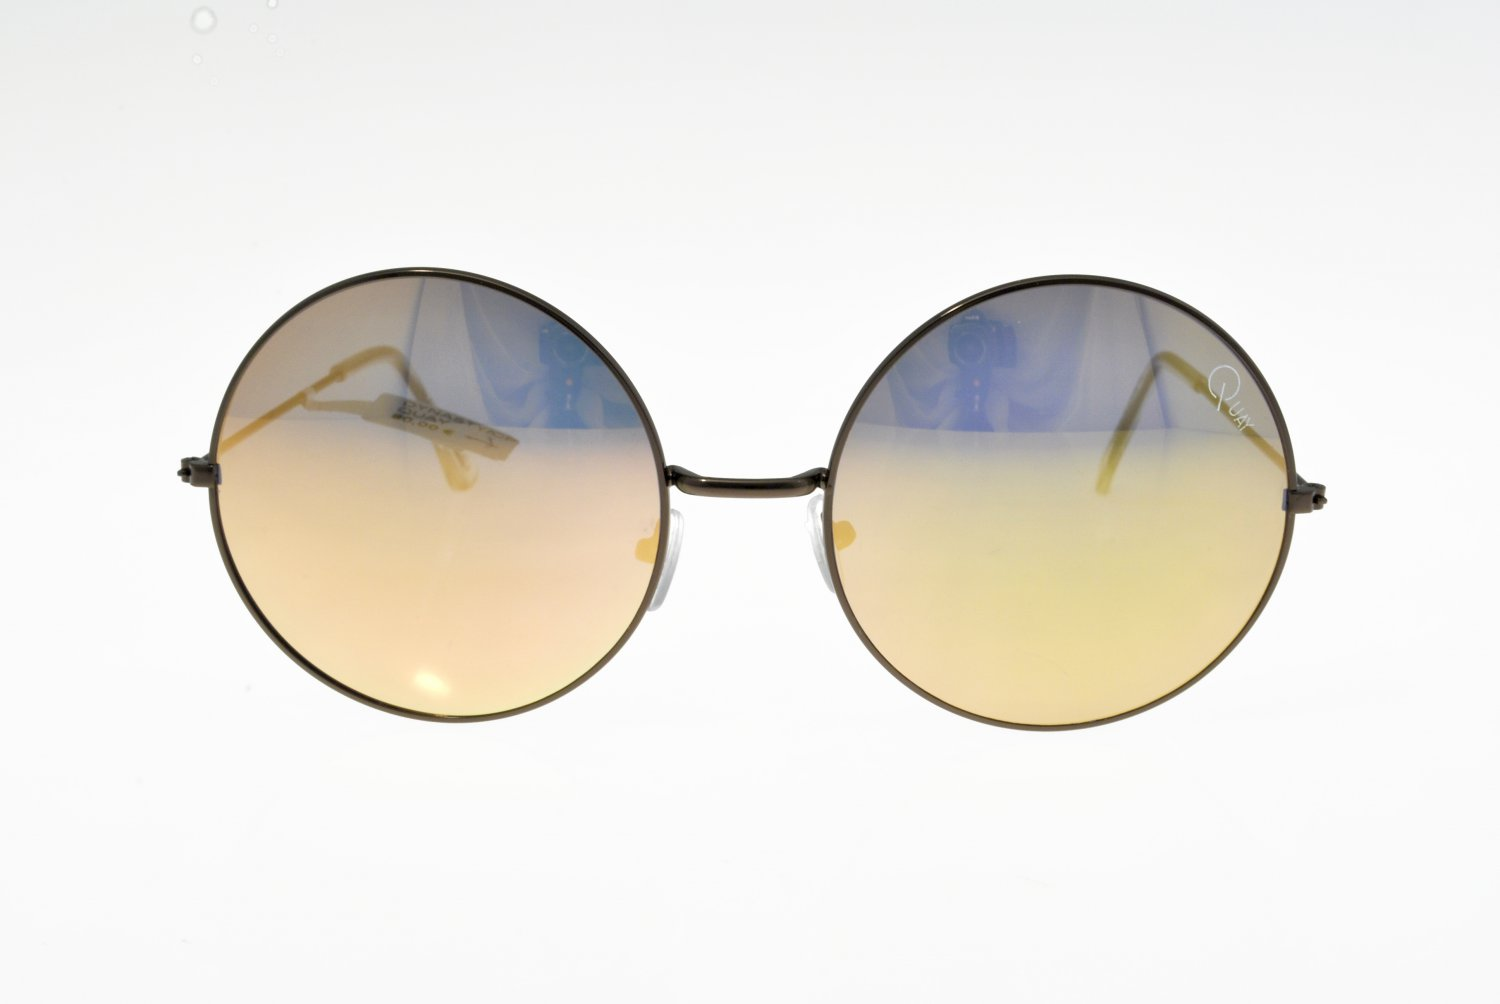 Sunglasses Quay DYNASTY CPR/GOLD Women Black Round Gold Mirrored